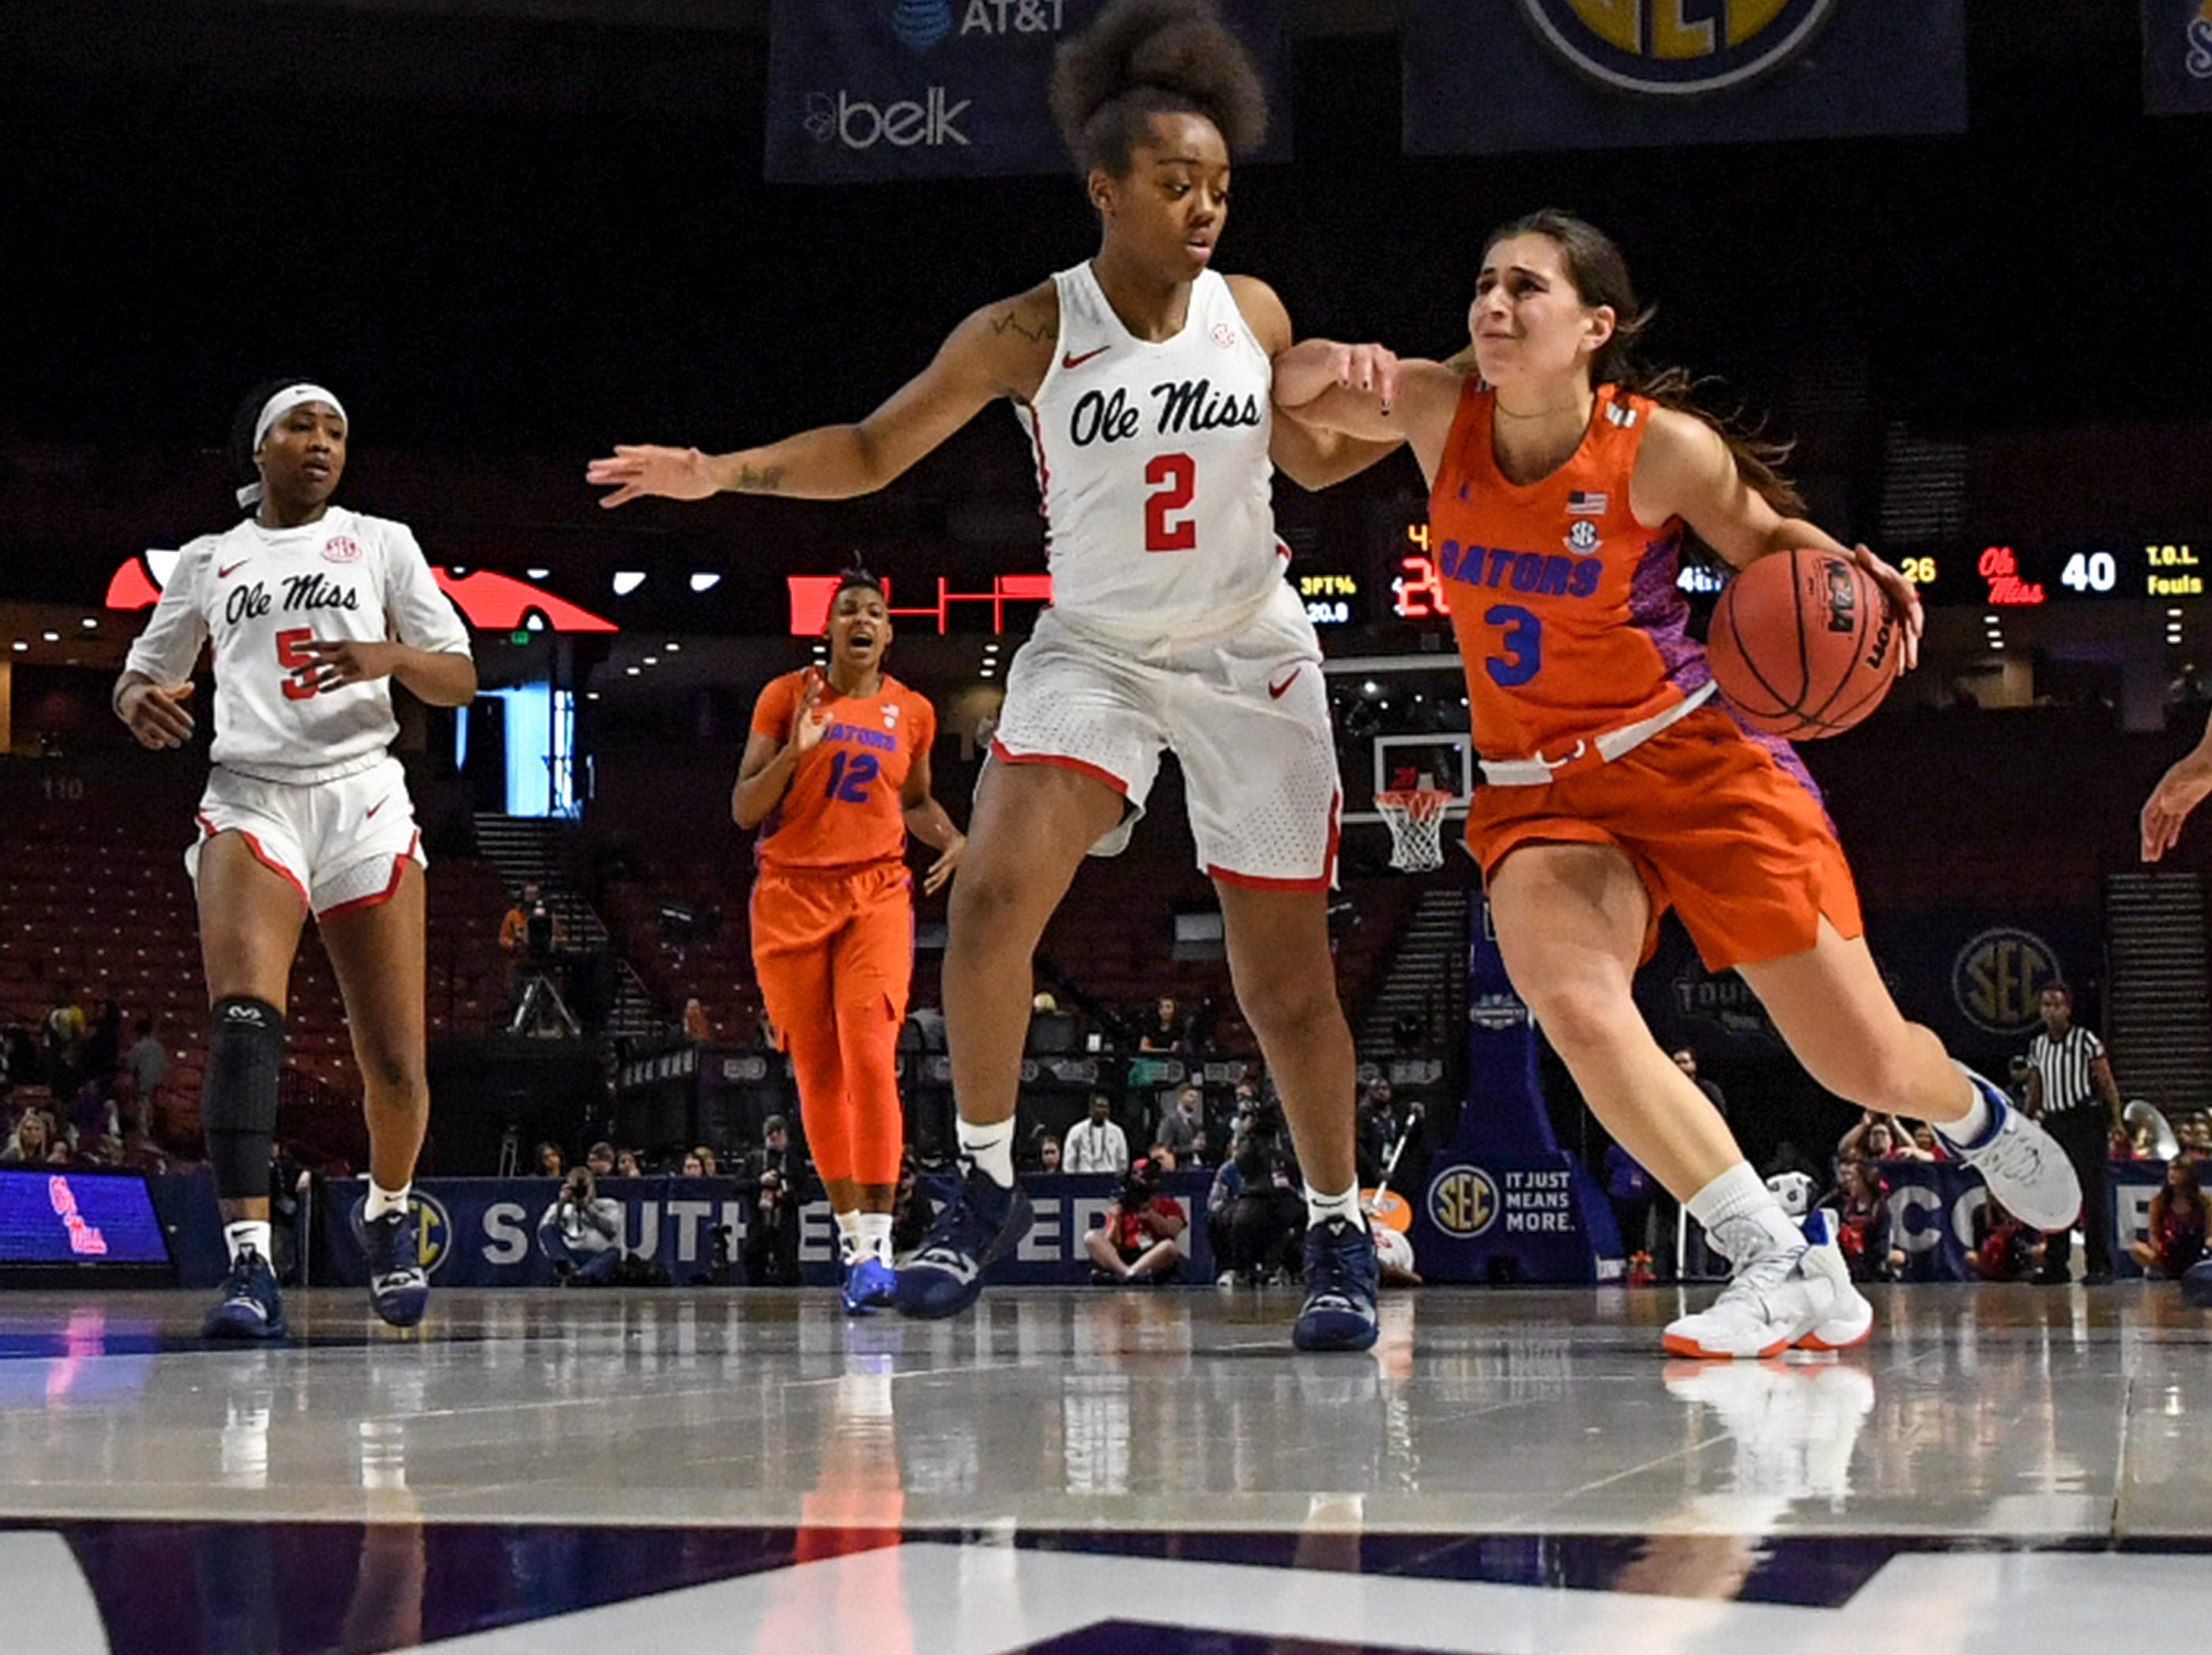 Florida guard Funda Nakkasoglu(3) dribbles around Ole Miss freshman Mimi Reid(2) during the fourth quarter of the Southeastern Conference Women's Tournament game at Bon Secour Wellness Arena in Greenville Wednesday, March 6, 2019.